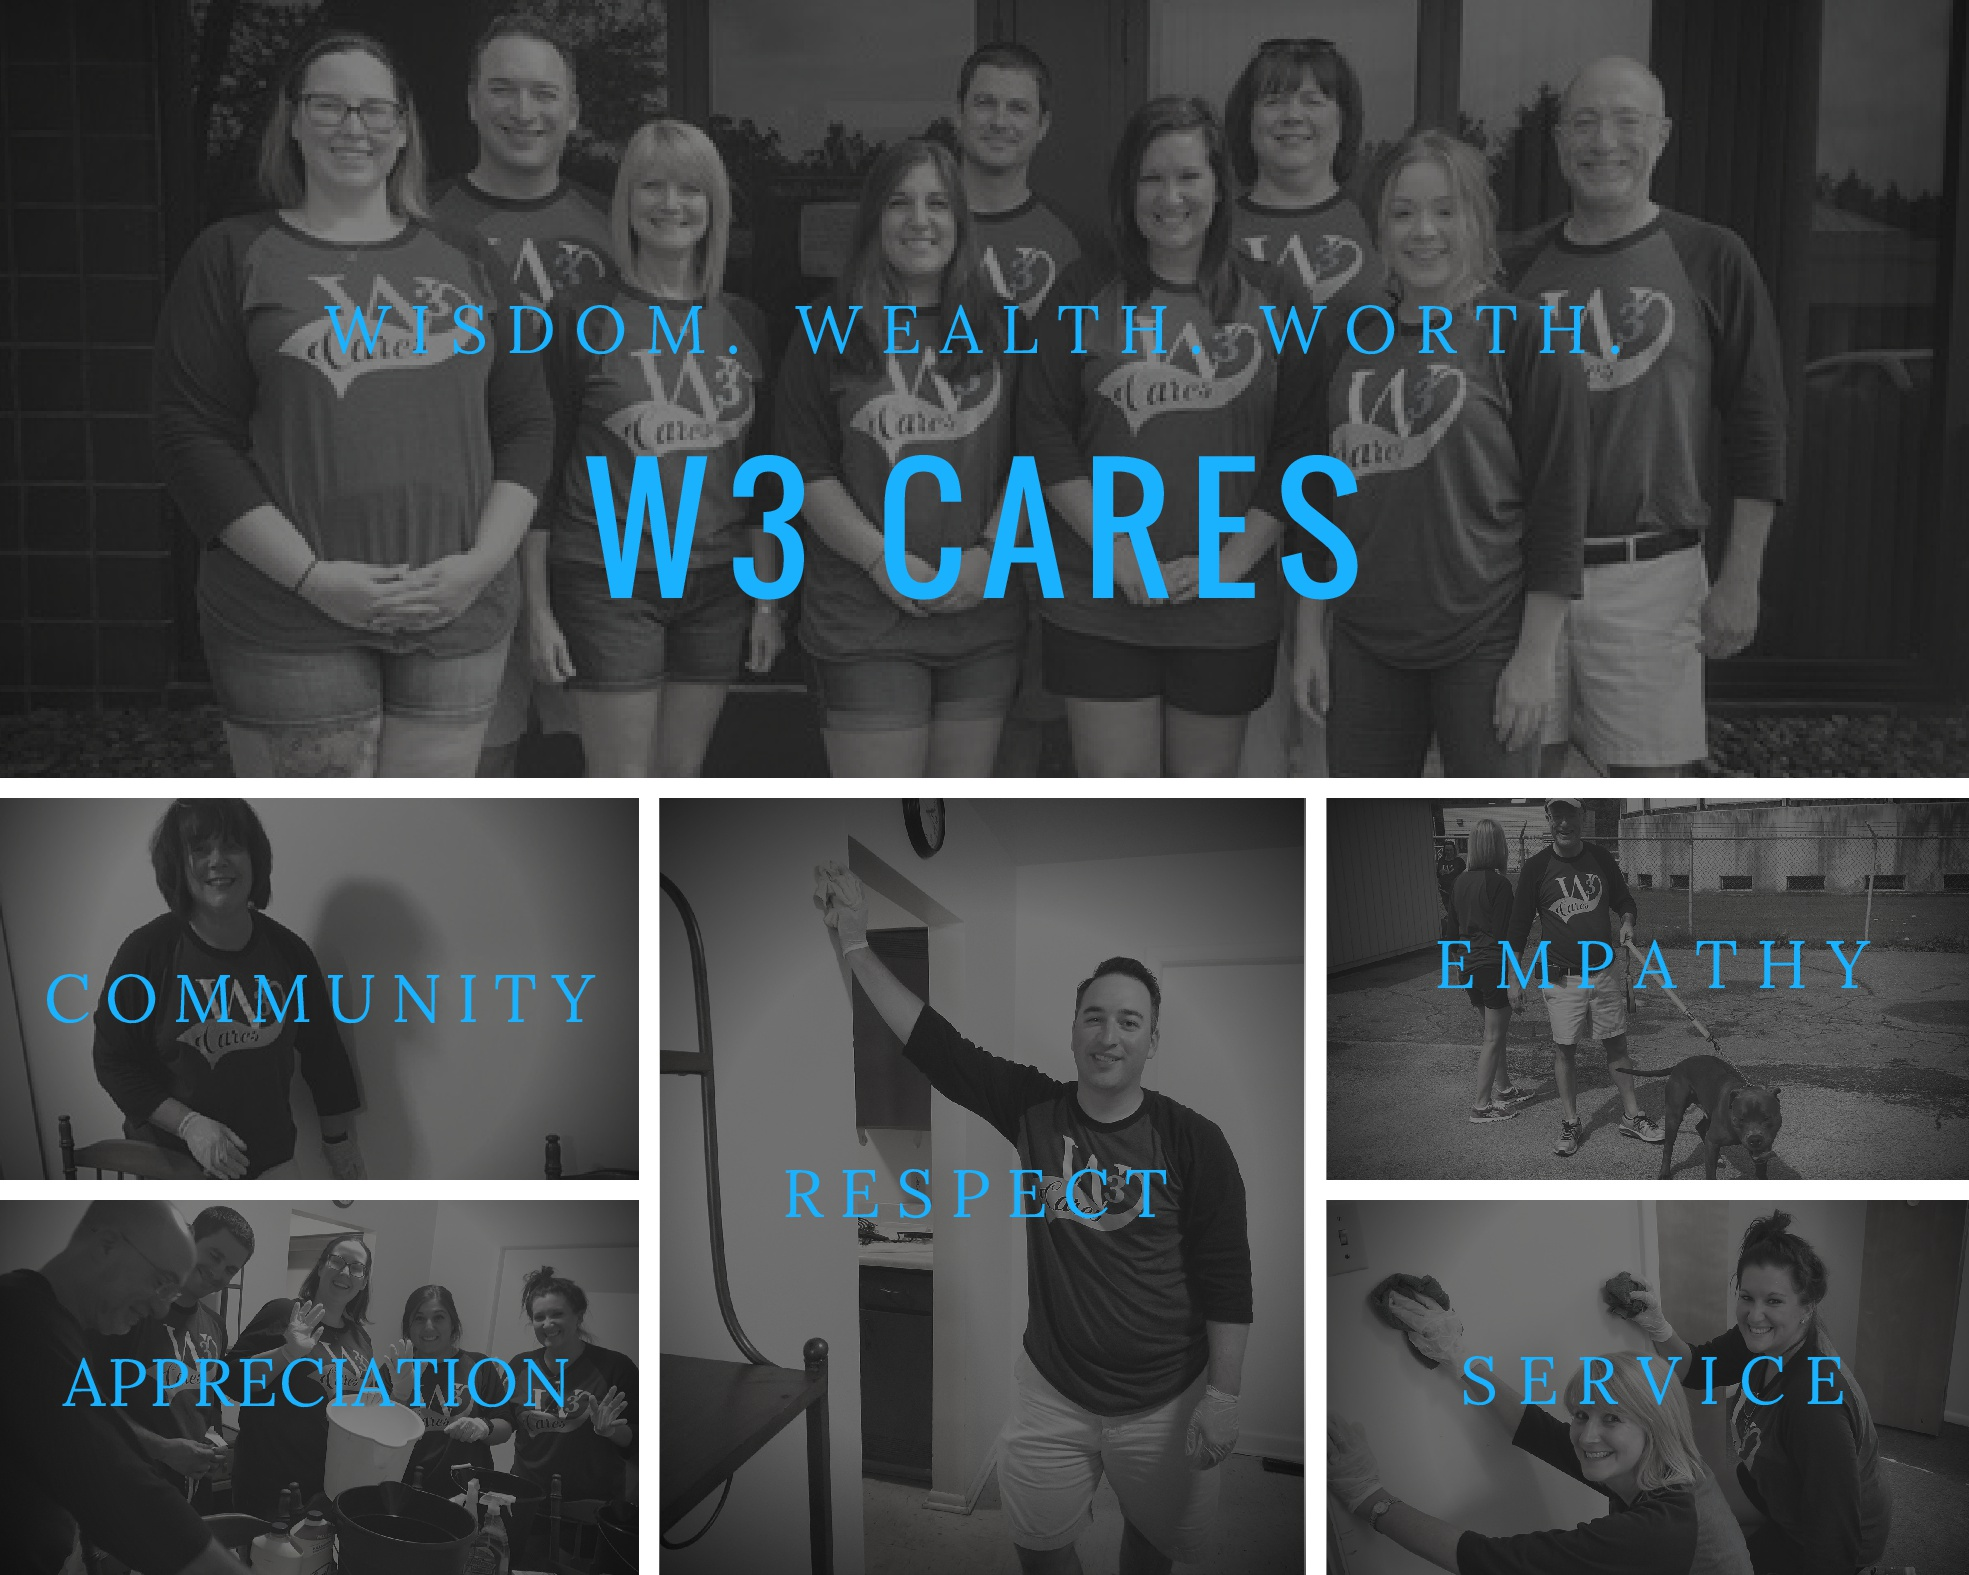 W3 CARES - clack and white collage